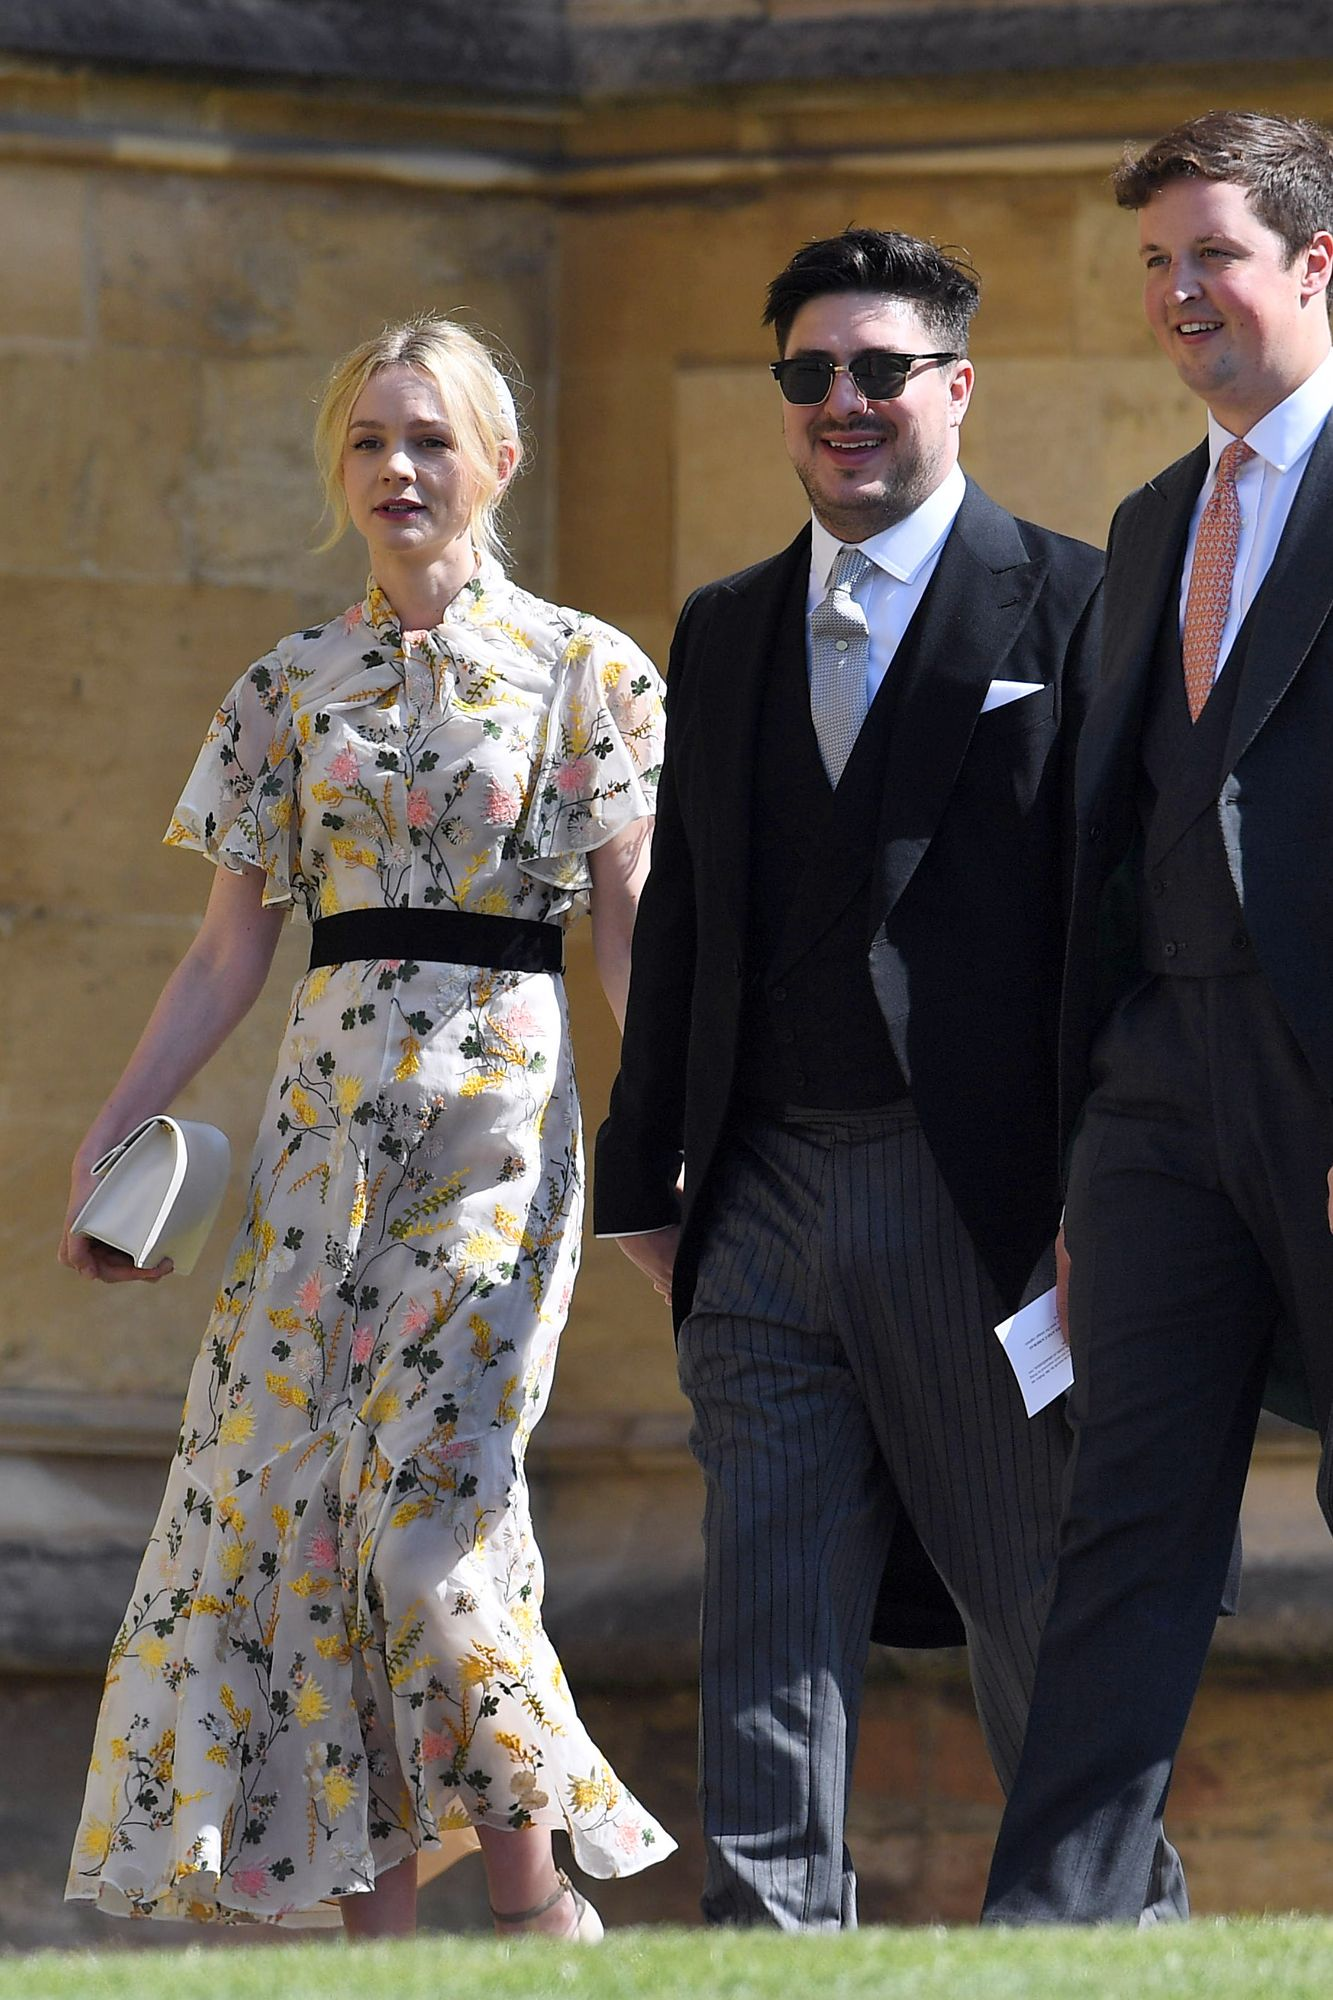 Going To The Chapel See All The Vip Guests Arriving At Harry And Meghan S Royal Wedding Guest Outfit Wedding Guest Outfit Royal Wedding [ 2000 x 1333 Pixel ]